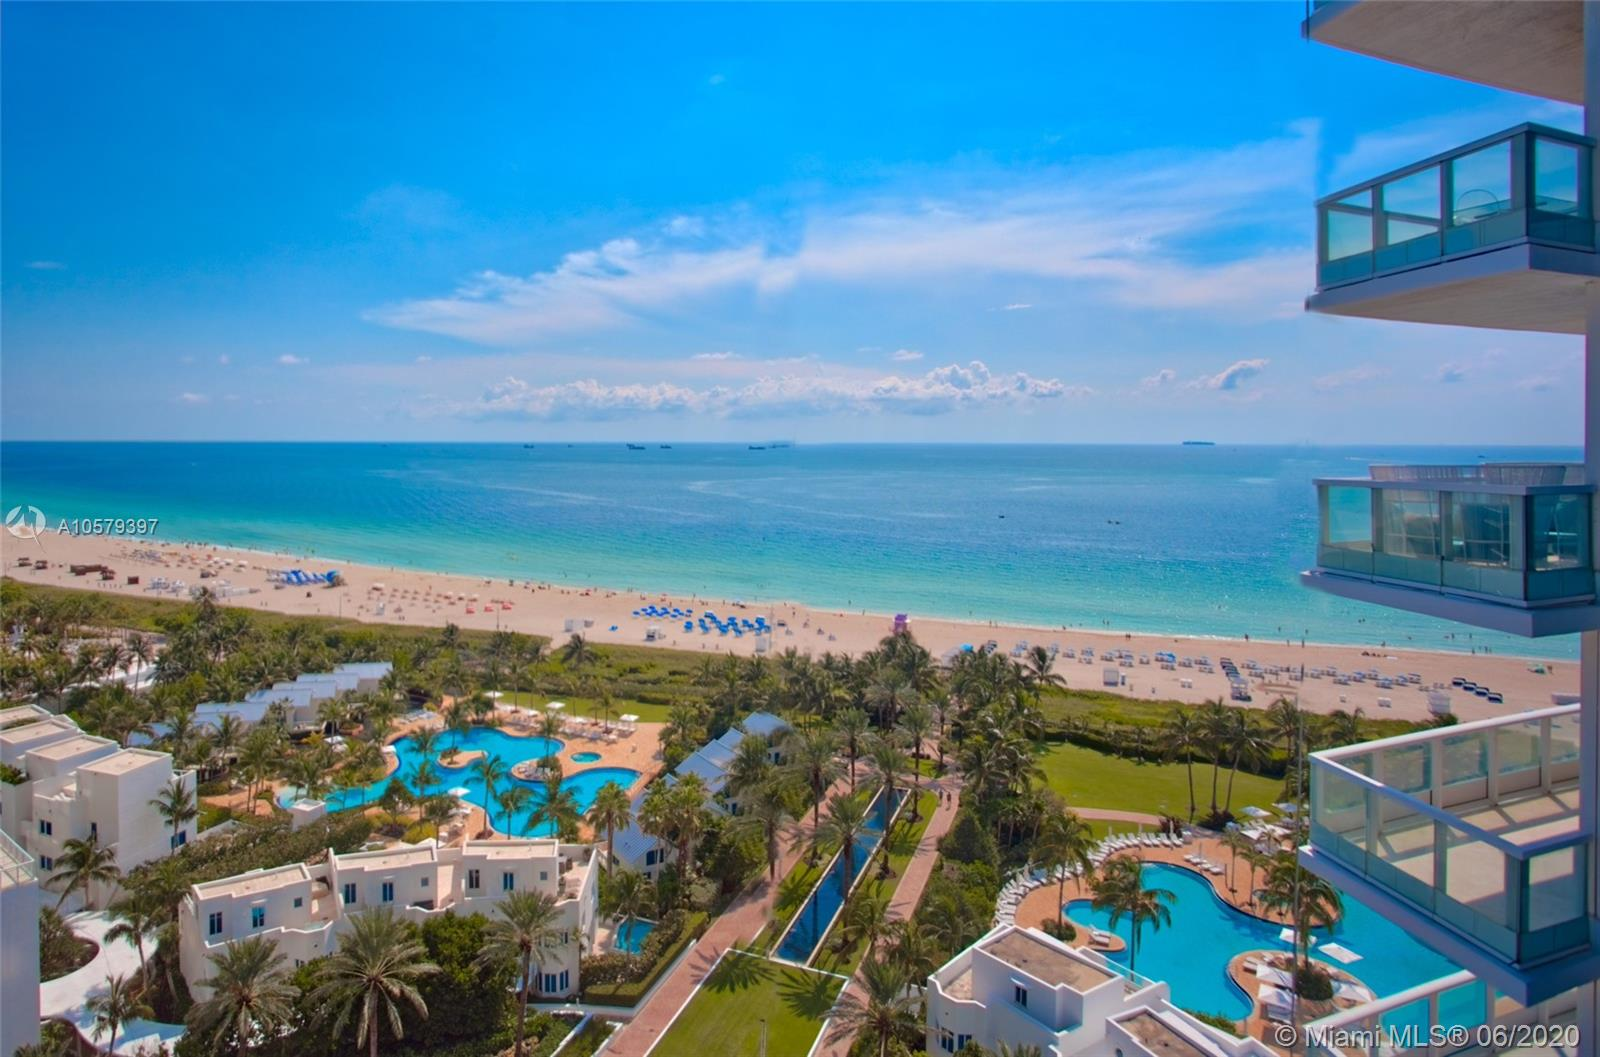 Spacious 3 bedroom and 3 bath in the highly sought after Continuum South Tower.This rarely available, both East and West Corner line captures the best of both views, Ocean and Bay; Fisher Island & the Downtown Miami skyline.Renovated unit with hard wood floors in living area & marble baths.Top of the line finishes including electronic blackout shades & surround sound throughout. Amenities include Oceanfront restaurant, 3 tennis courts, 25,000 sq ft luxury spa,beach & towel service,5 star concierge & more